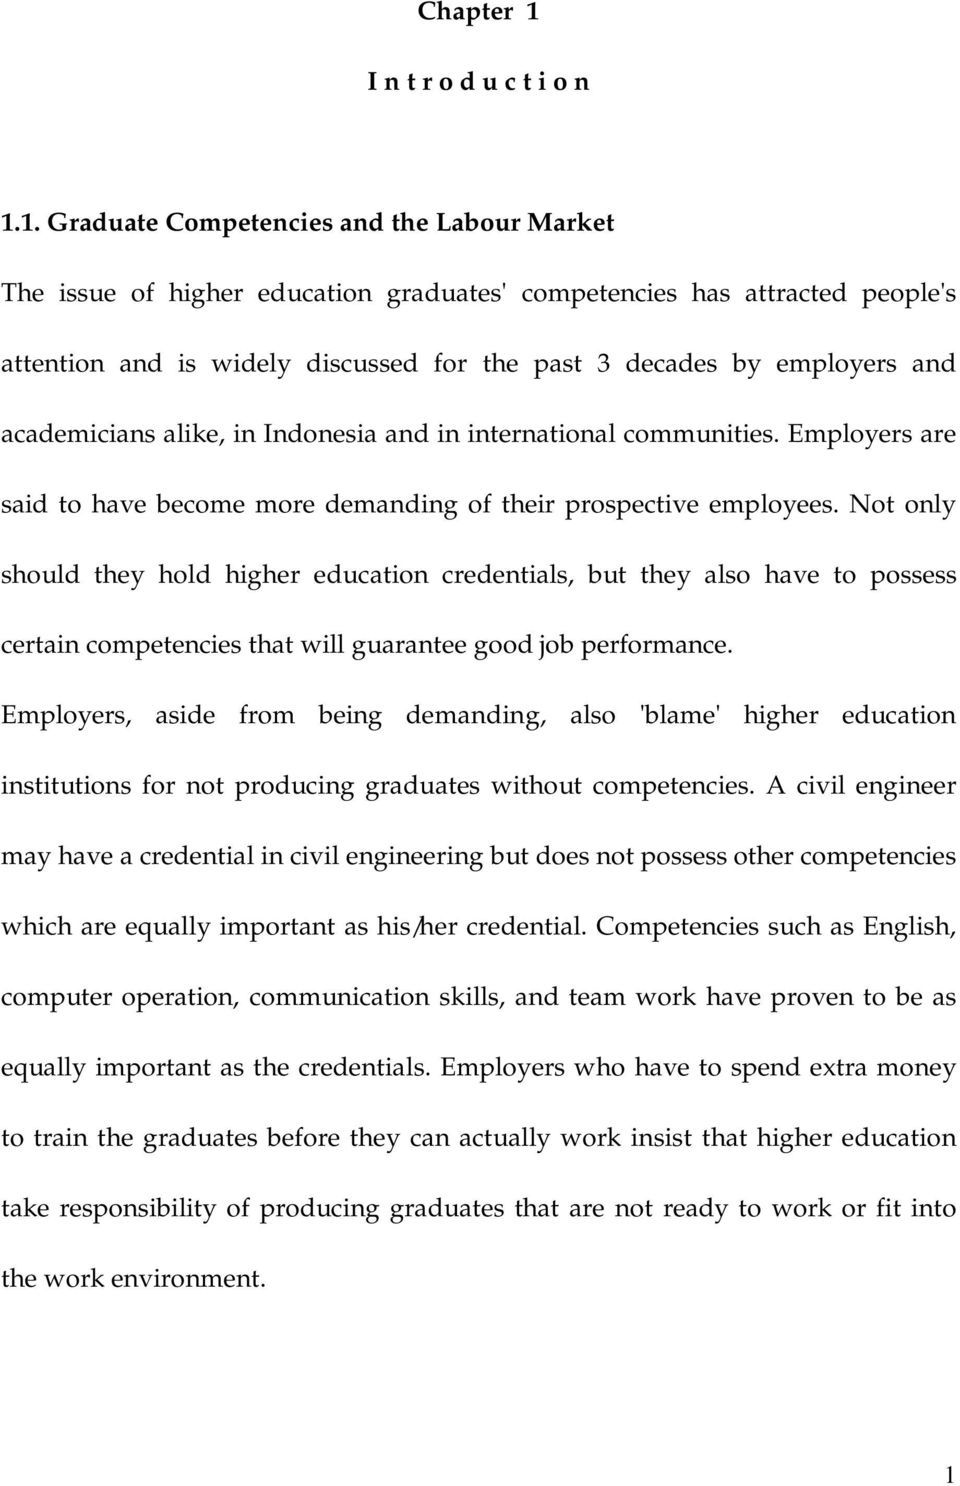 1. Graduate Competencies and the Labour Market The issue of higher education graduates' competencies has attracted people's attention and is widely discussed for the past 3 decades by employers and